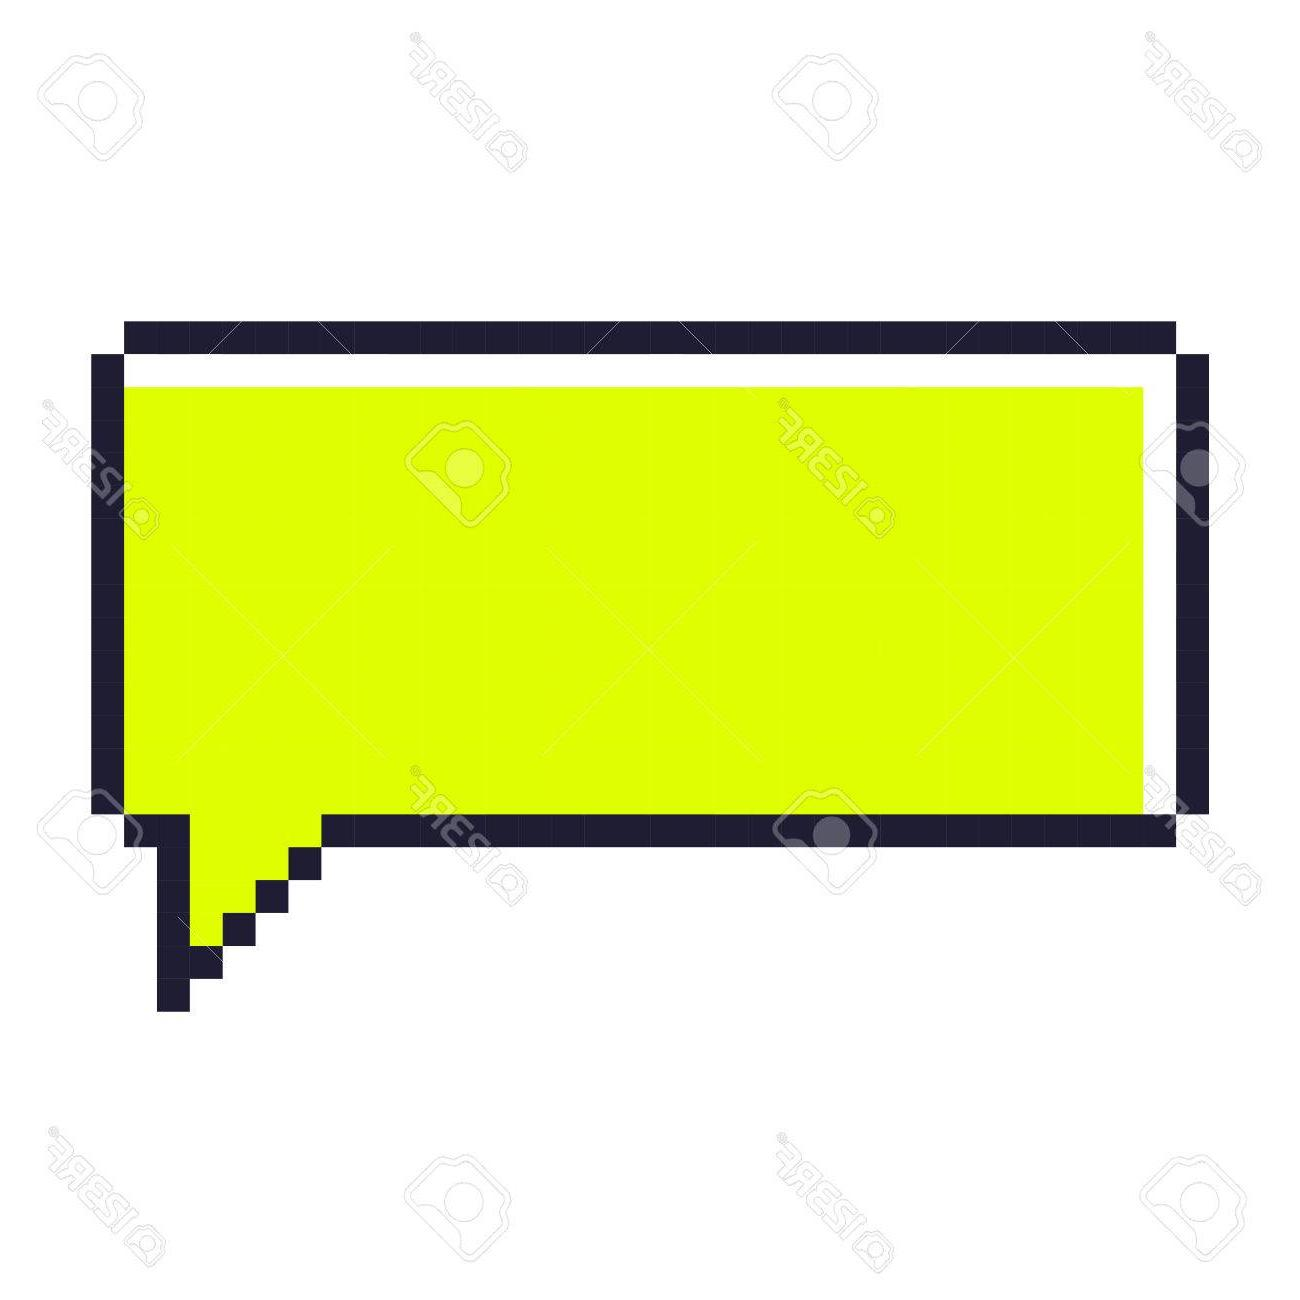 10 clipart bubble jpg royalty free library Top 10 Rectangle Clipart Speech Bubble Cdr jpg royalty free library